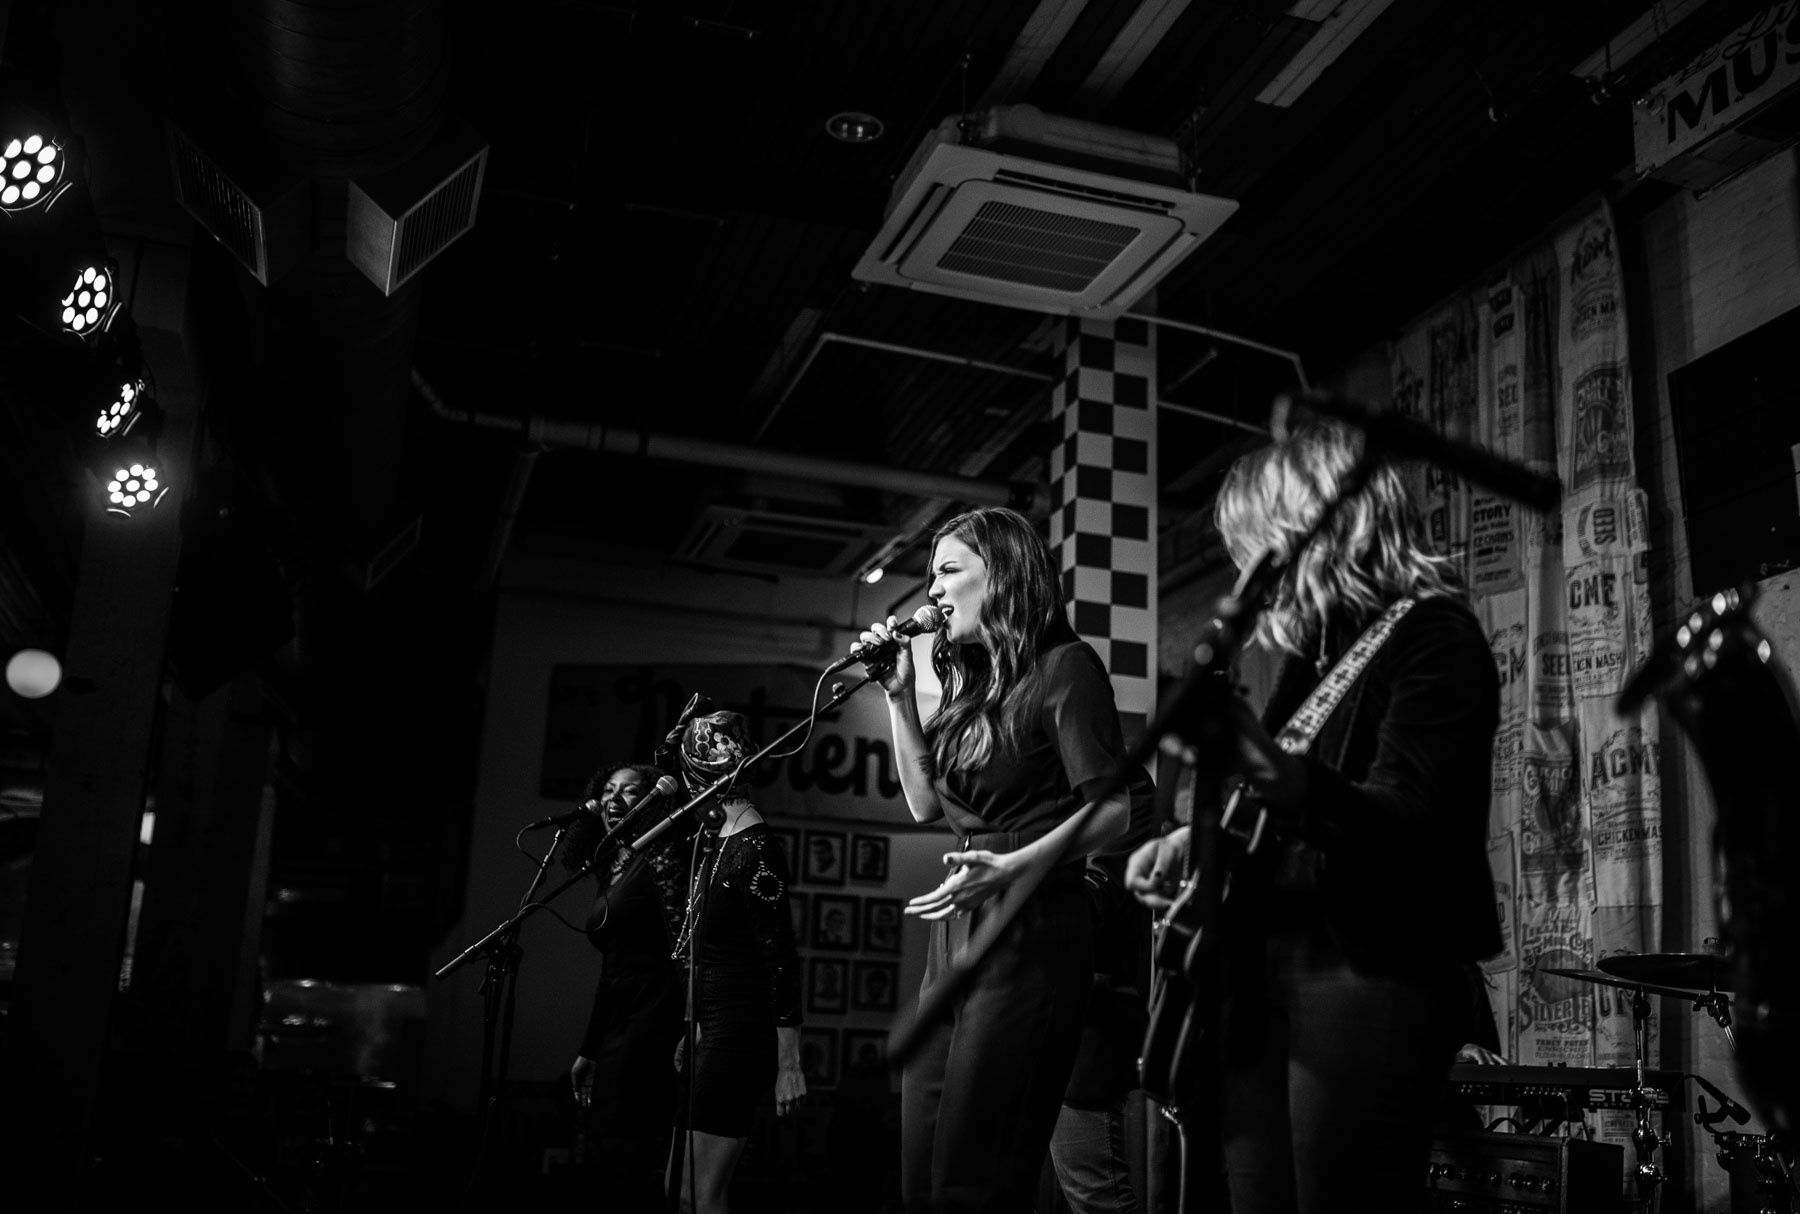 [REVIEW + PHOTOS] Poema, Whissell, & Natalie Royal | 2.16.16 @ Acme Feed & Seed